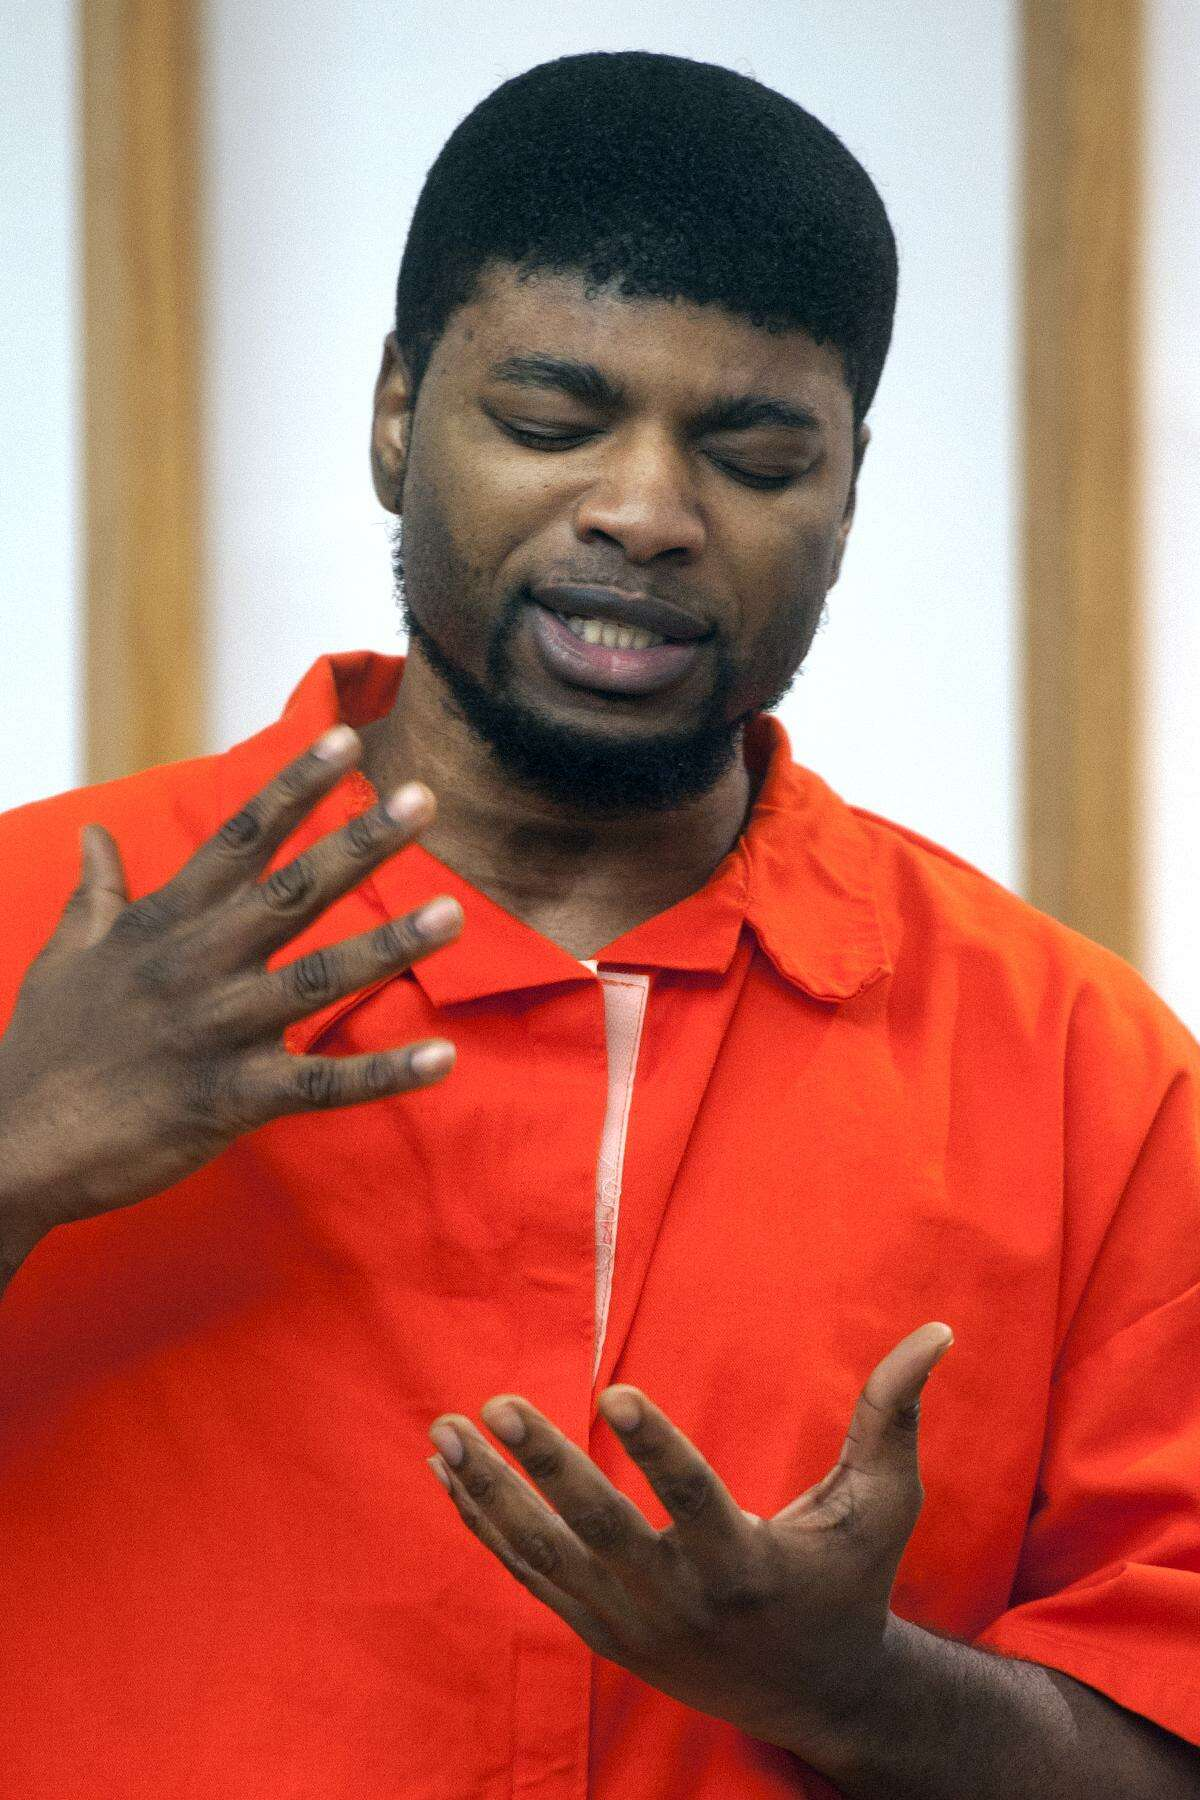 Jermaine Richards speaks during his sentencing in Bridgeport Superior Court, in Bridgeport, Conn. March 2, 2018. Richards was sentenced to 60-years for the 2013 murder of Alyssiah Marie Wiley.